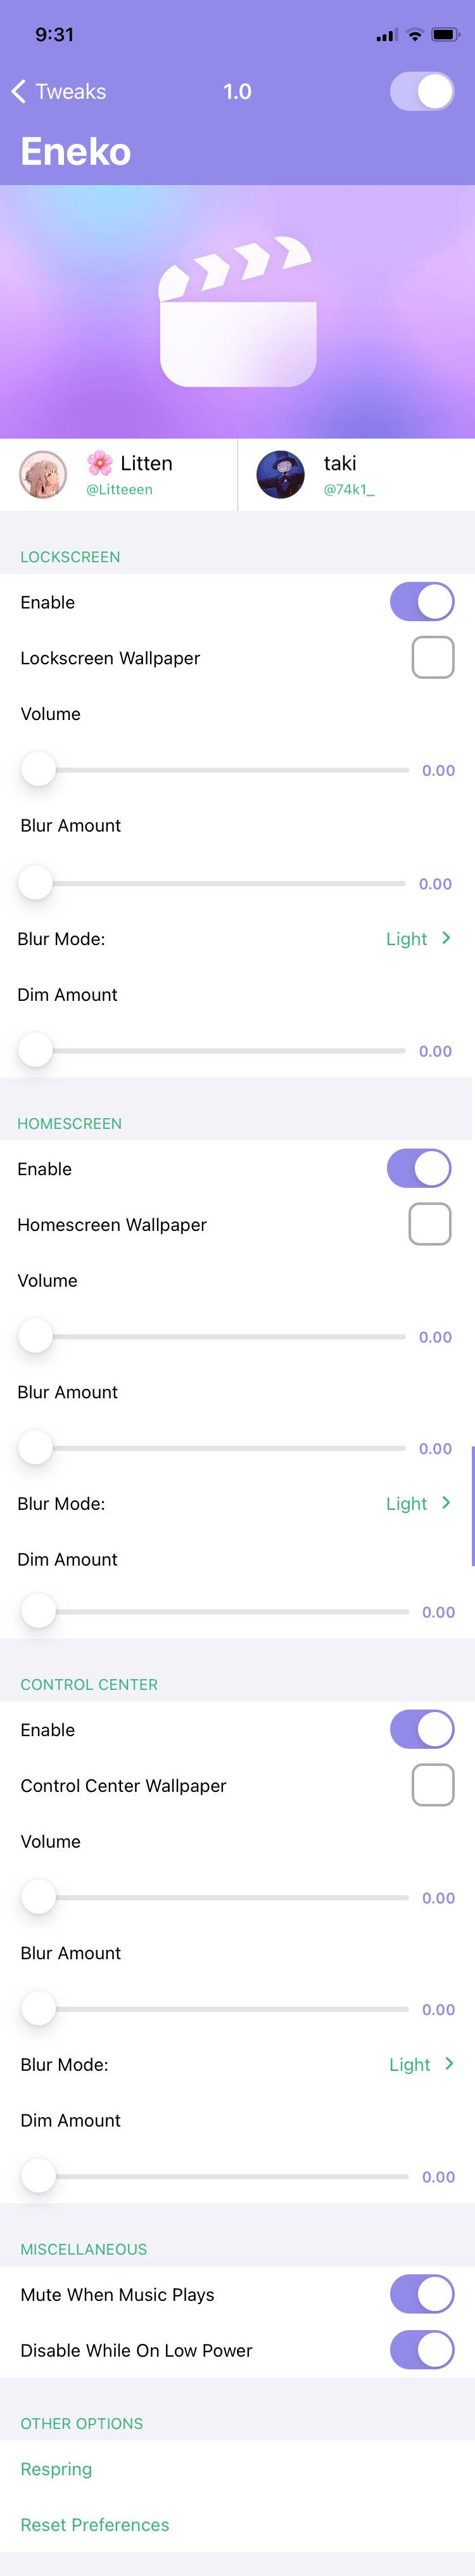 Eneko Tweak Settings